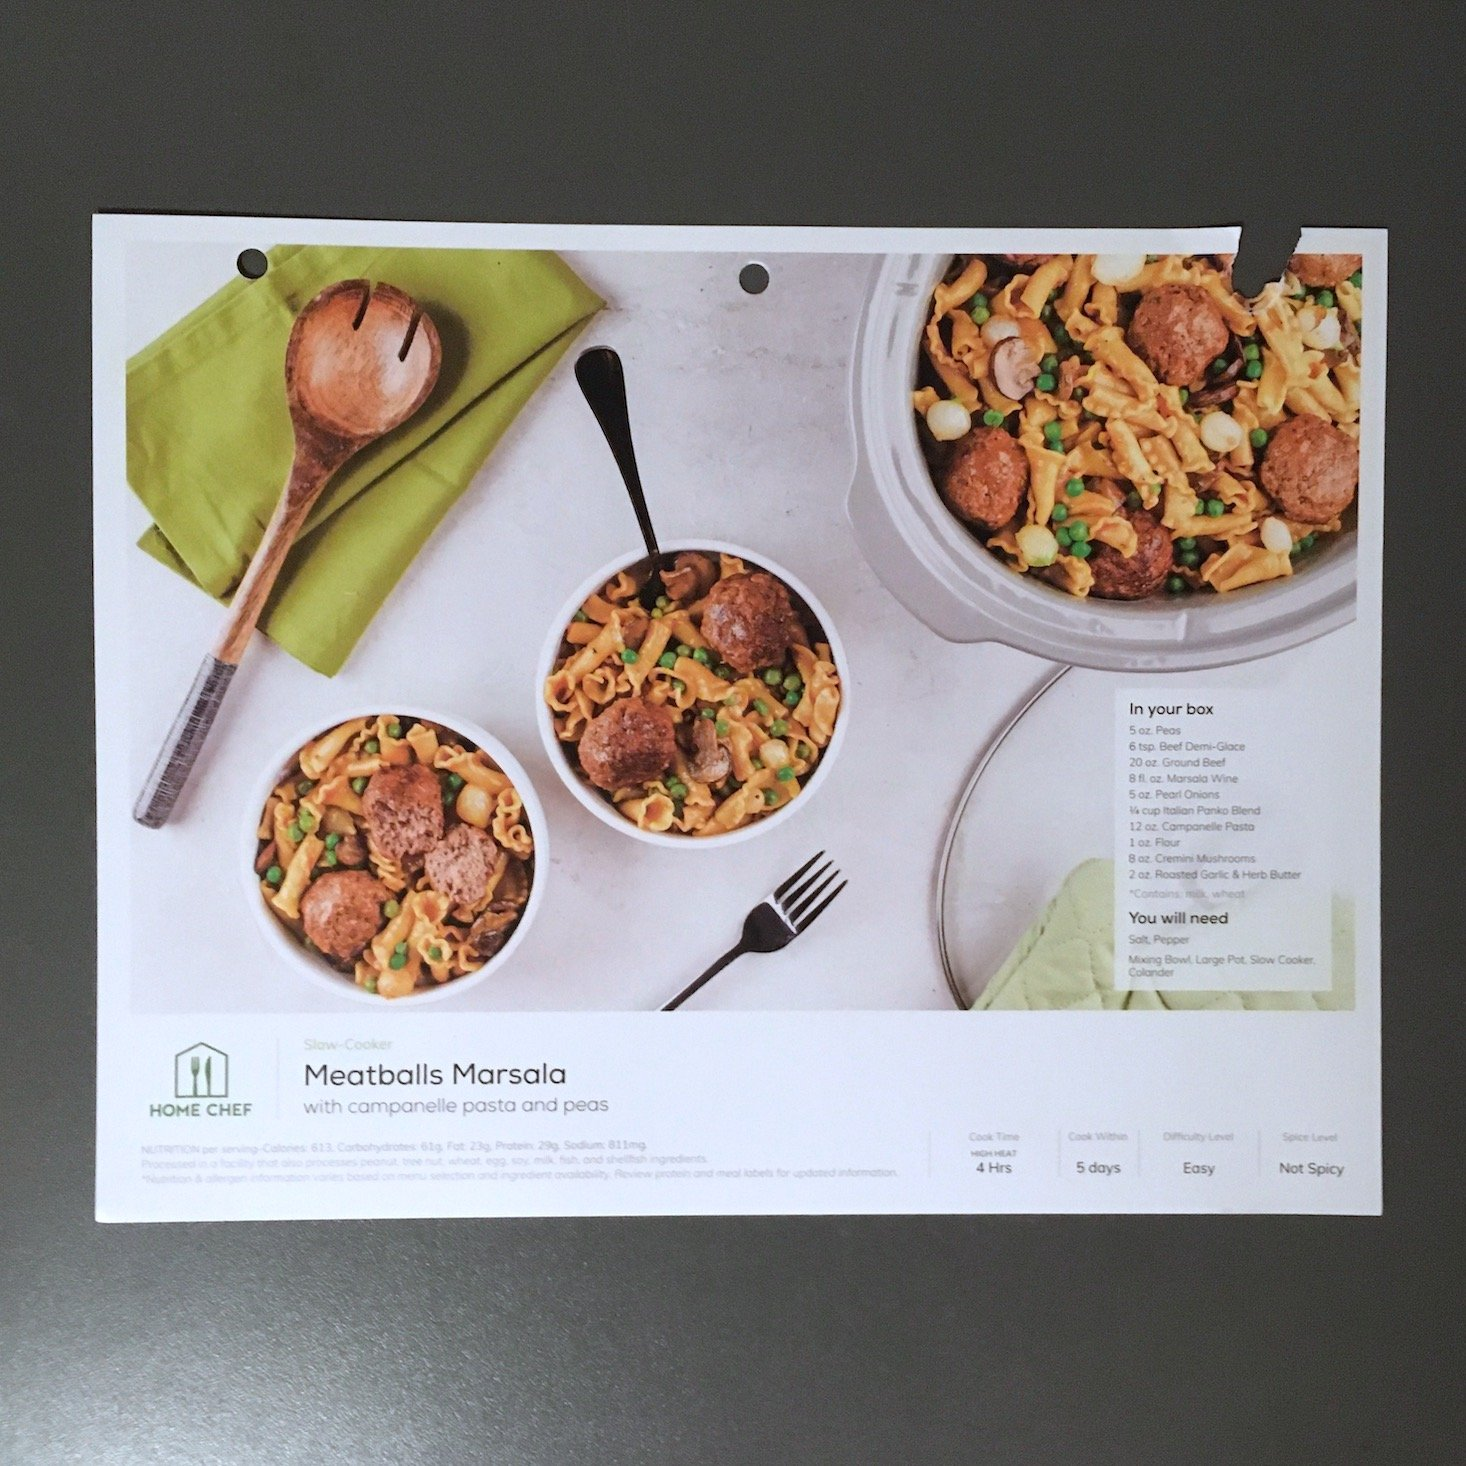 Home Chef February 2020 - slow cooker meatballs marsala recipe card front